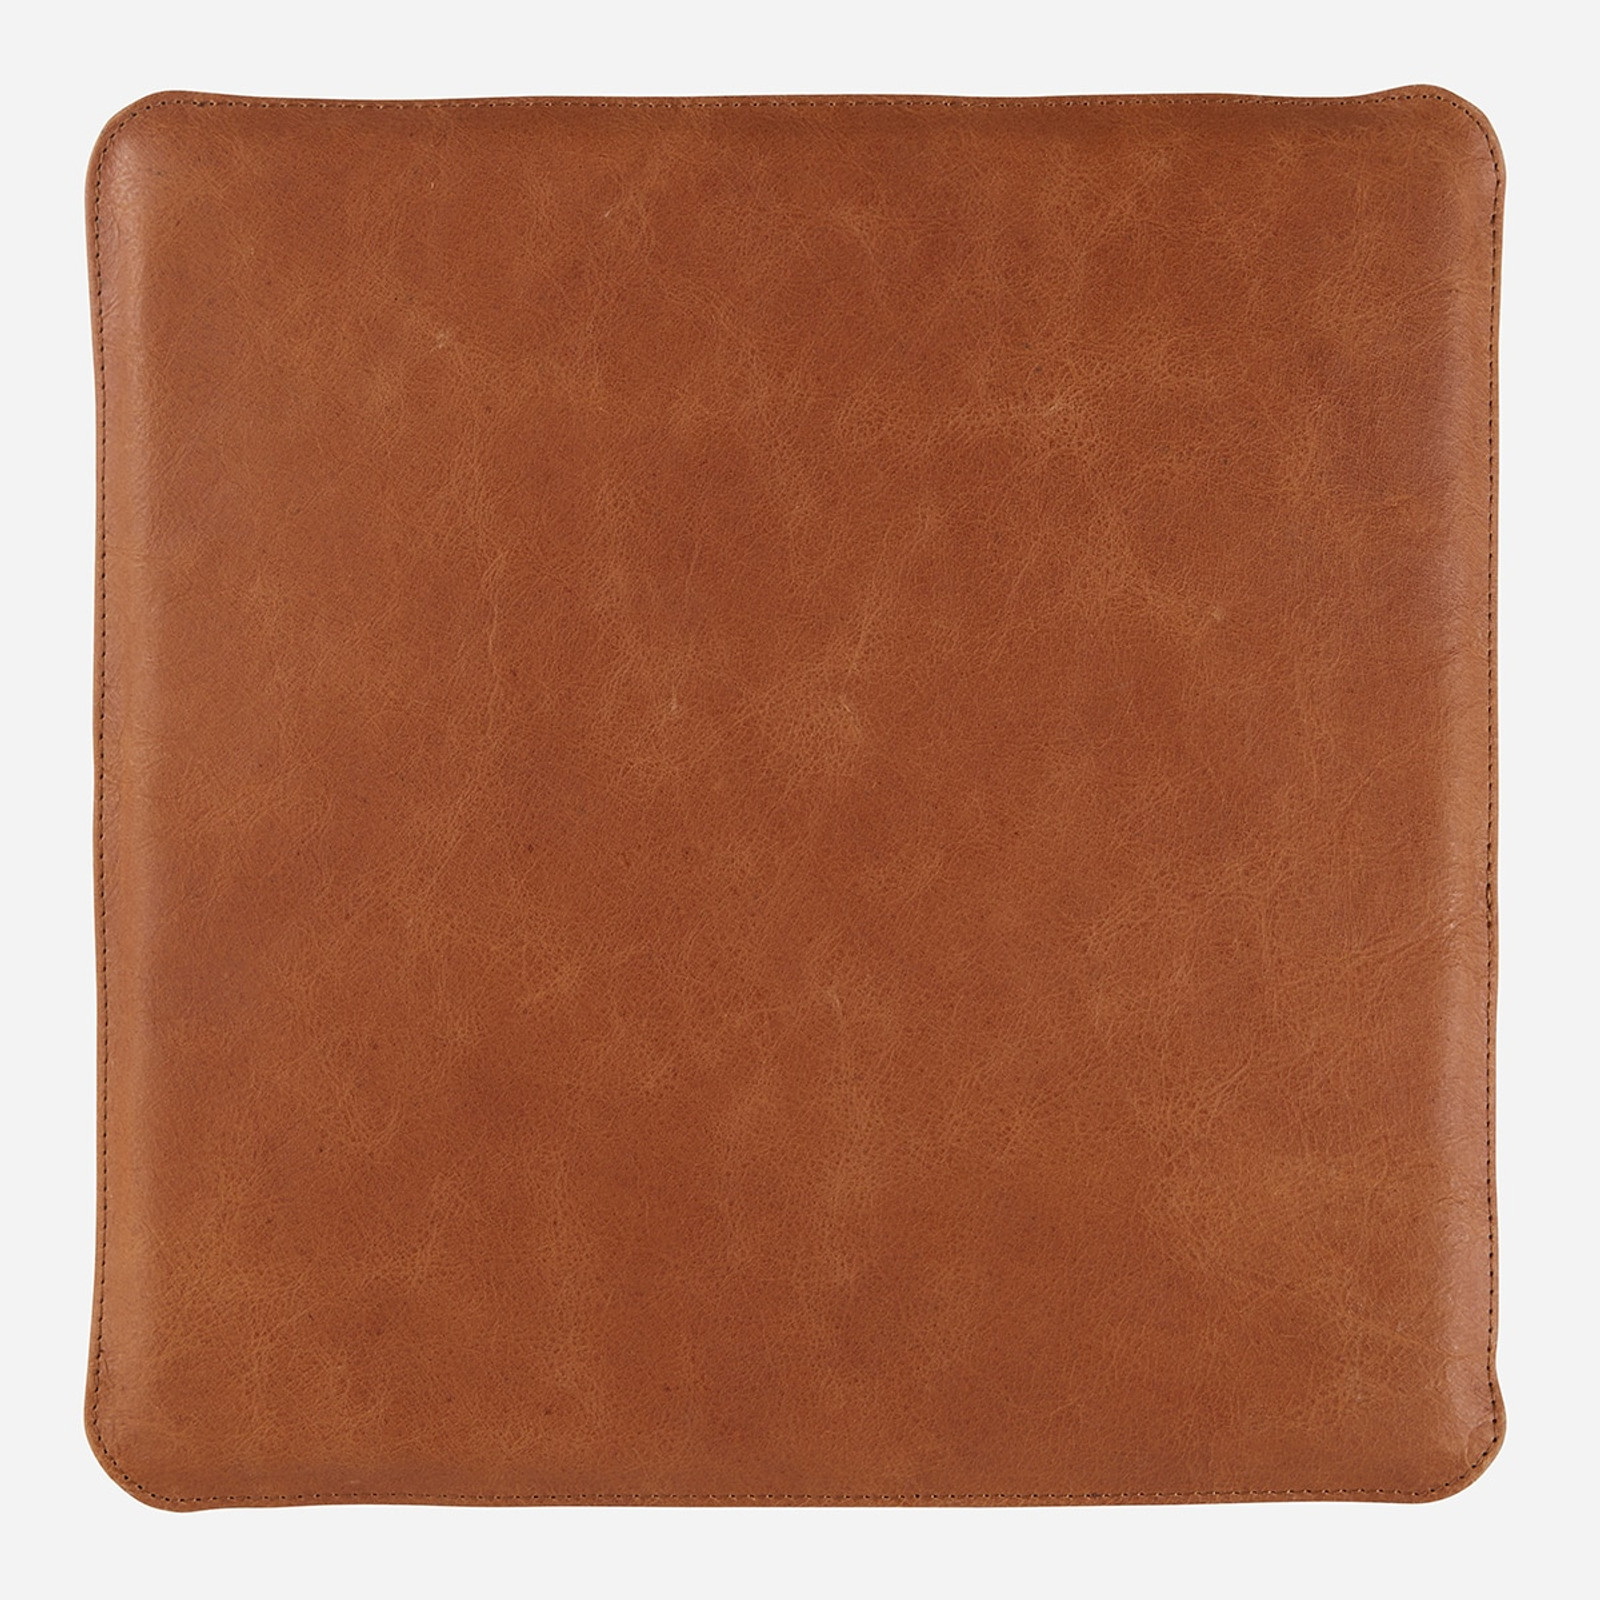 Magnetic Leather Chair Pad, Saddle